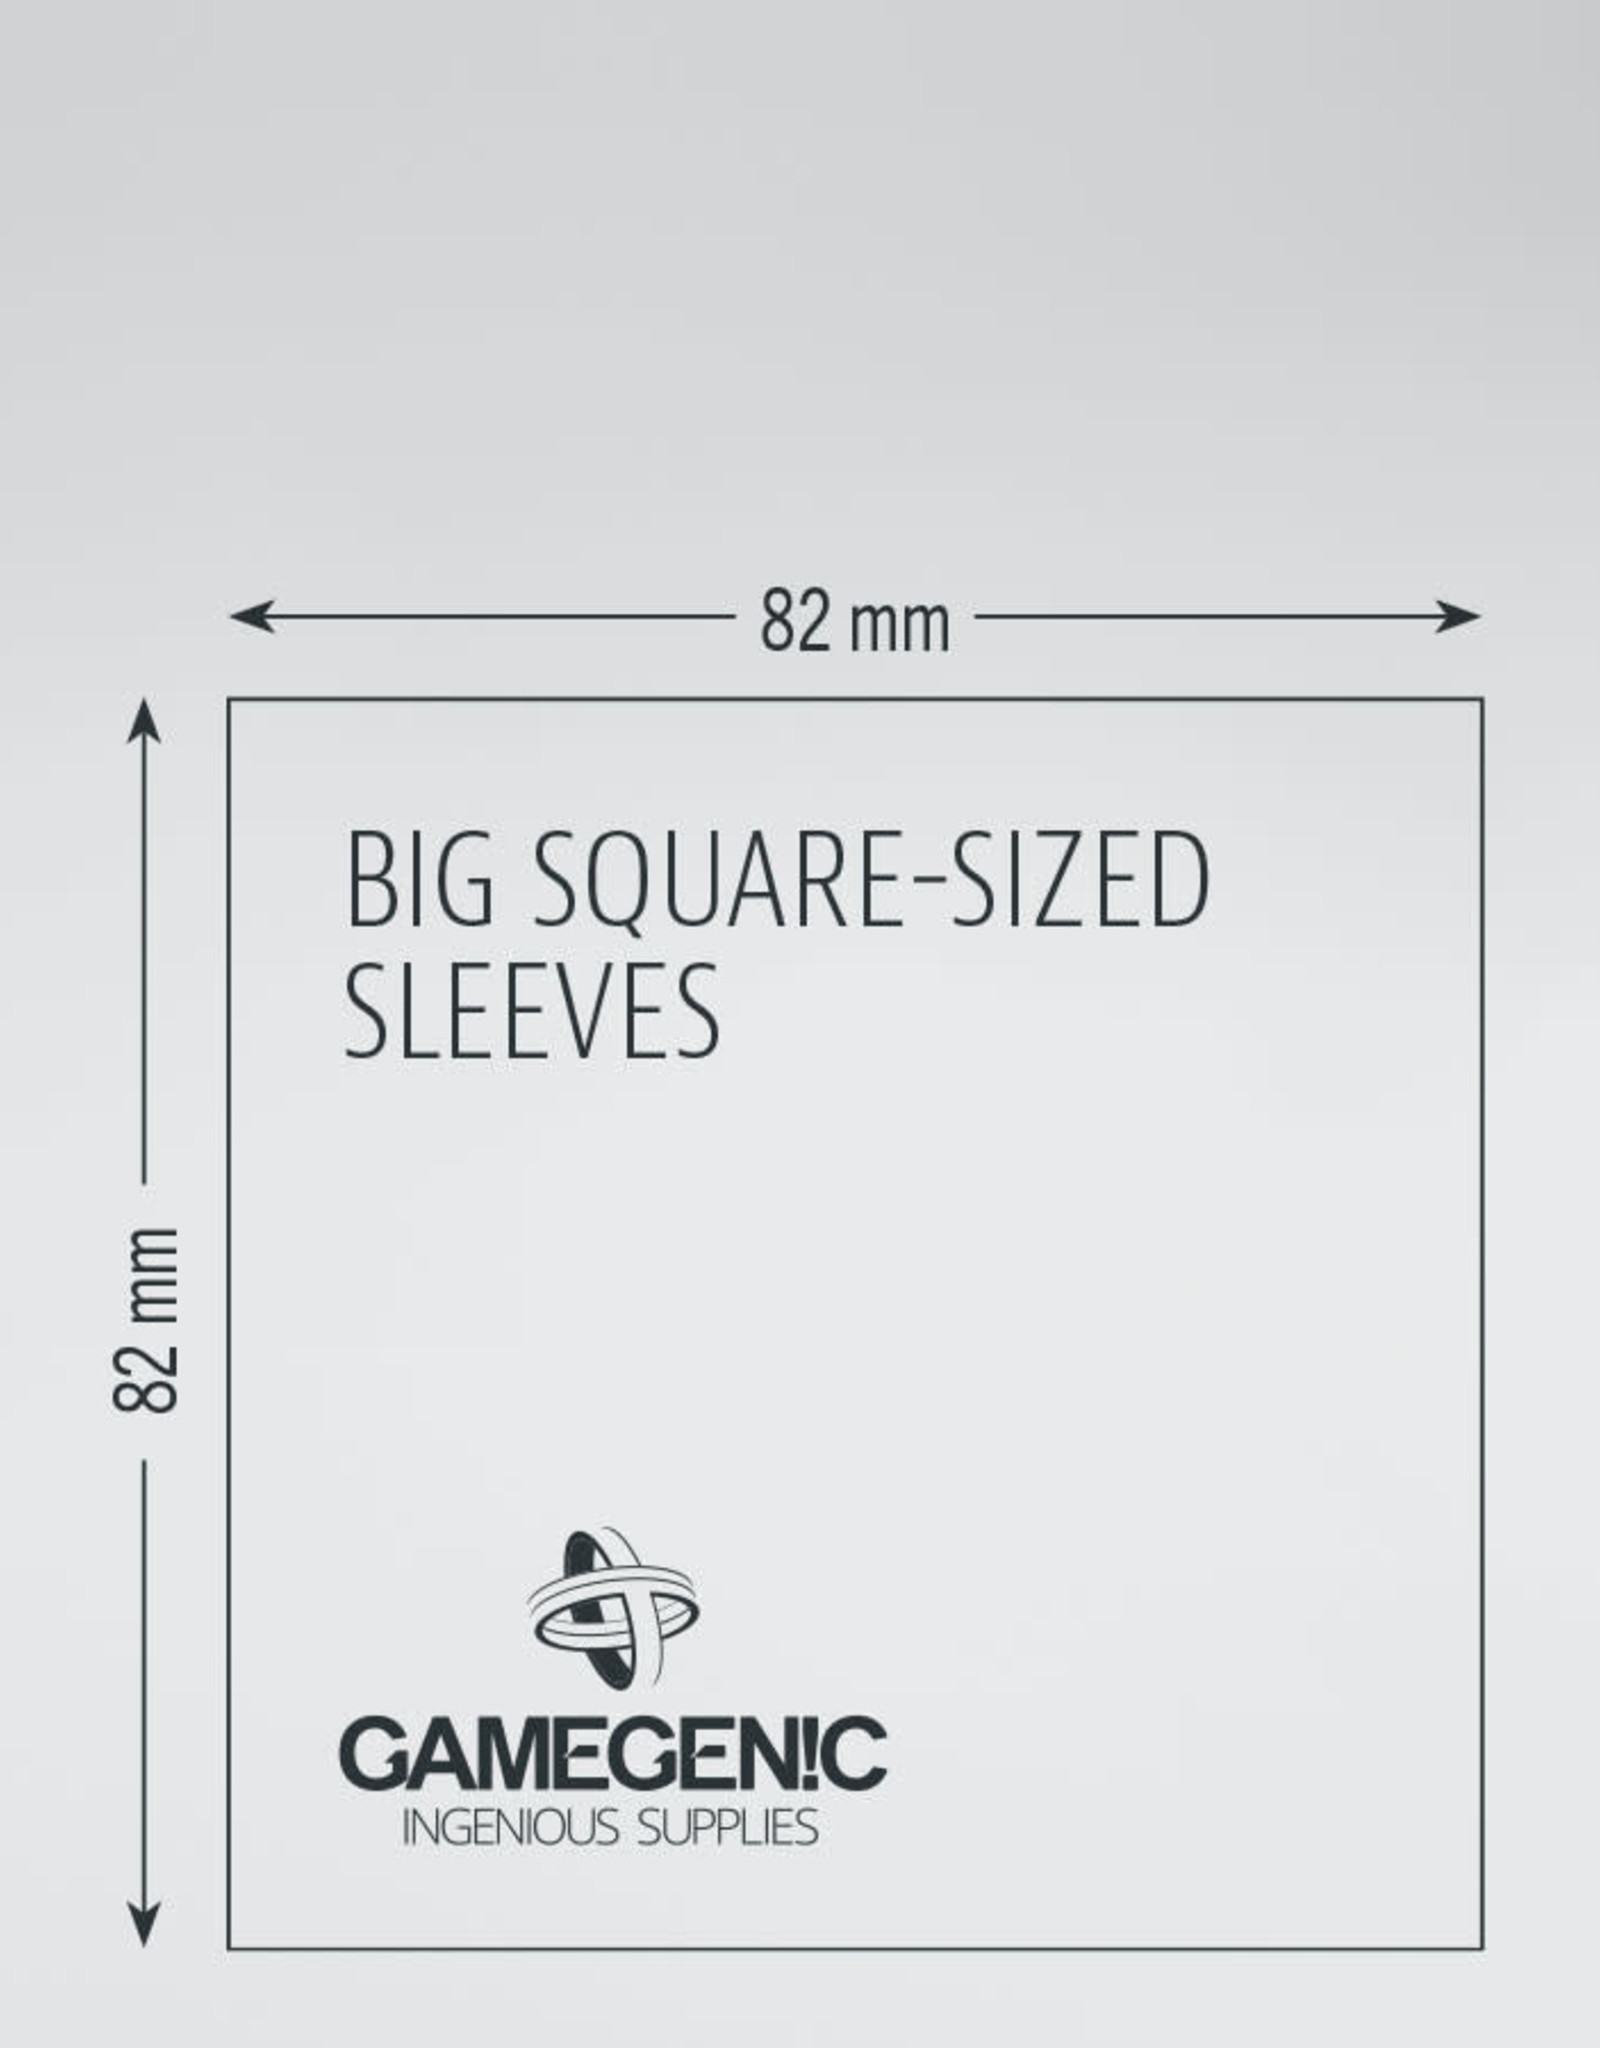 Prime Board Game Sleeves: Big Square-Sized / Werewolves / Jungle Speed 82mm x 82mm (50) (Lime)